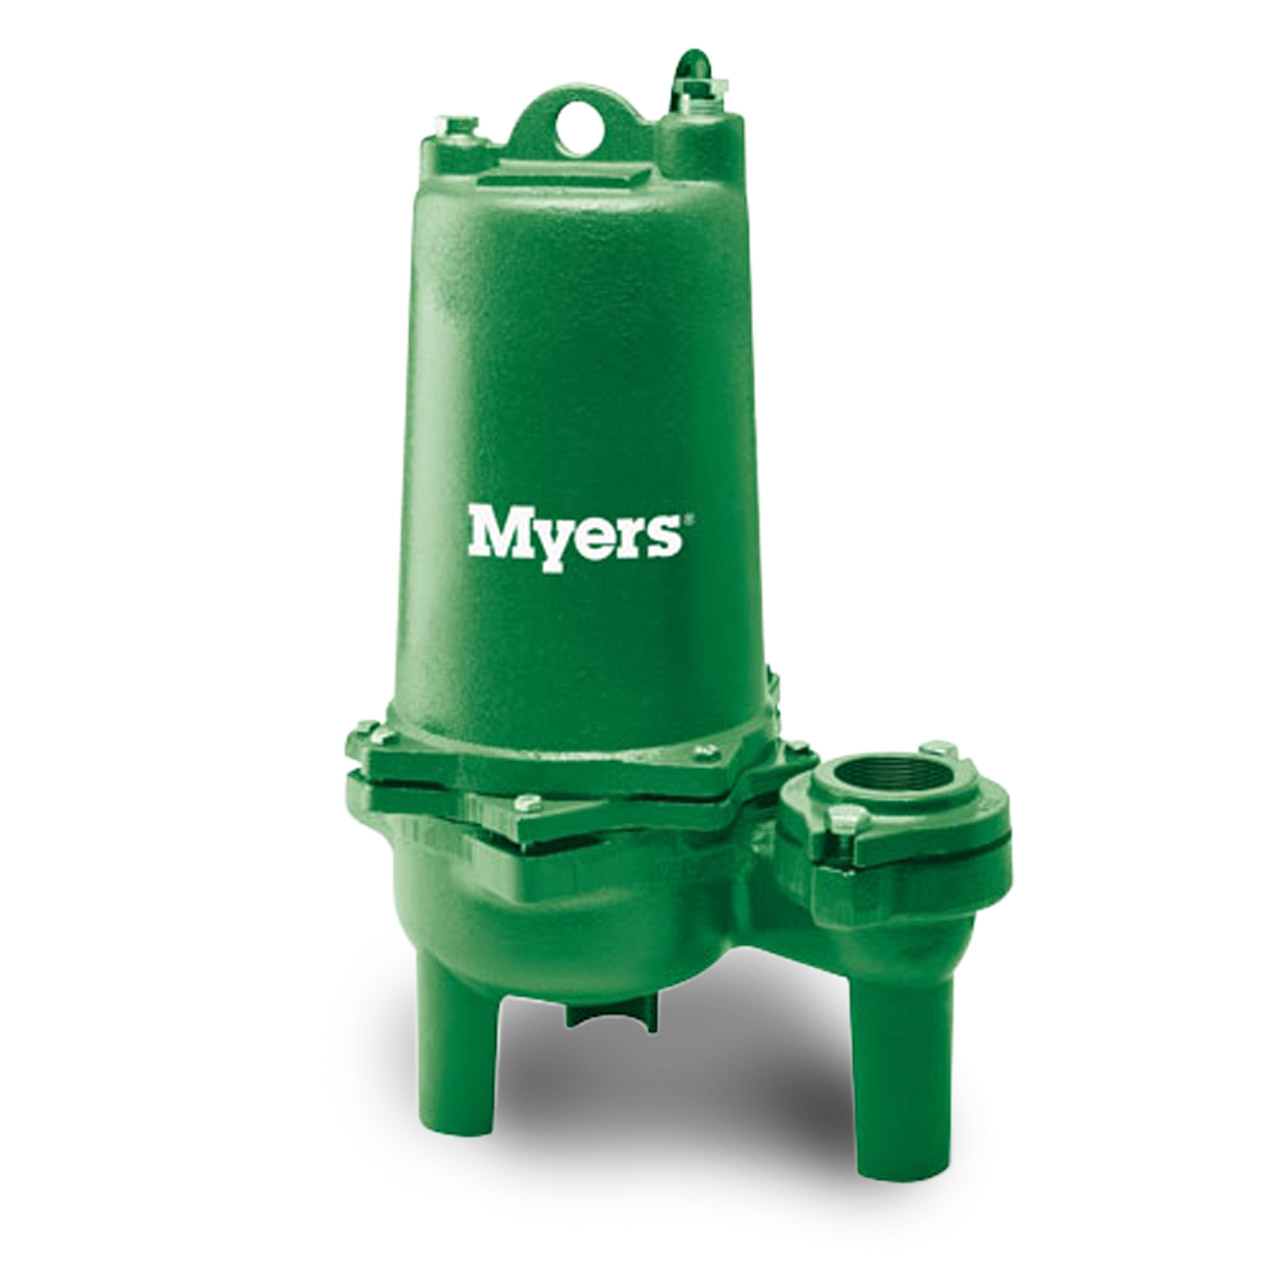 Myers - Myers WHR15H-21 High Head Sewage Pump 1.5 HP 230V 1 PH Manual 20'  Cord #MYRWHR15H21